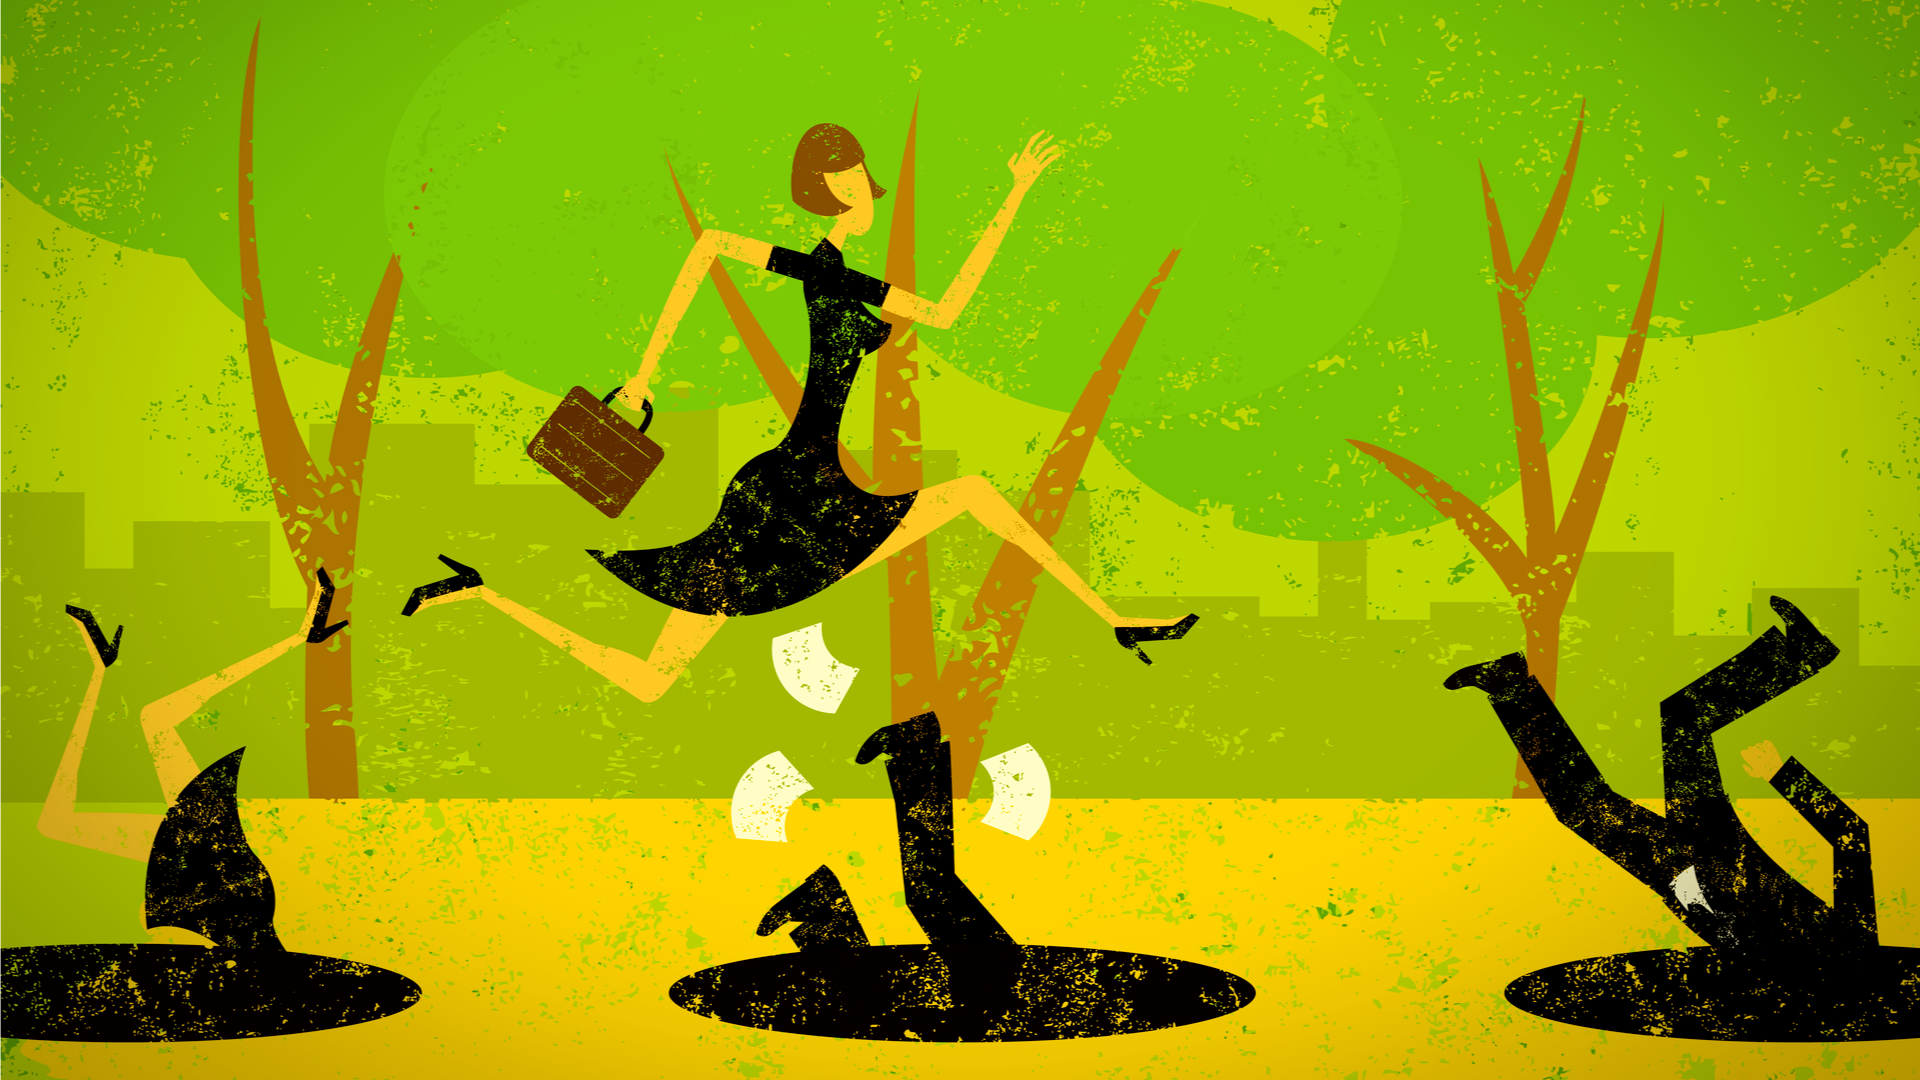 Graphical image of a business woman jumping over pitfalls in the ground